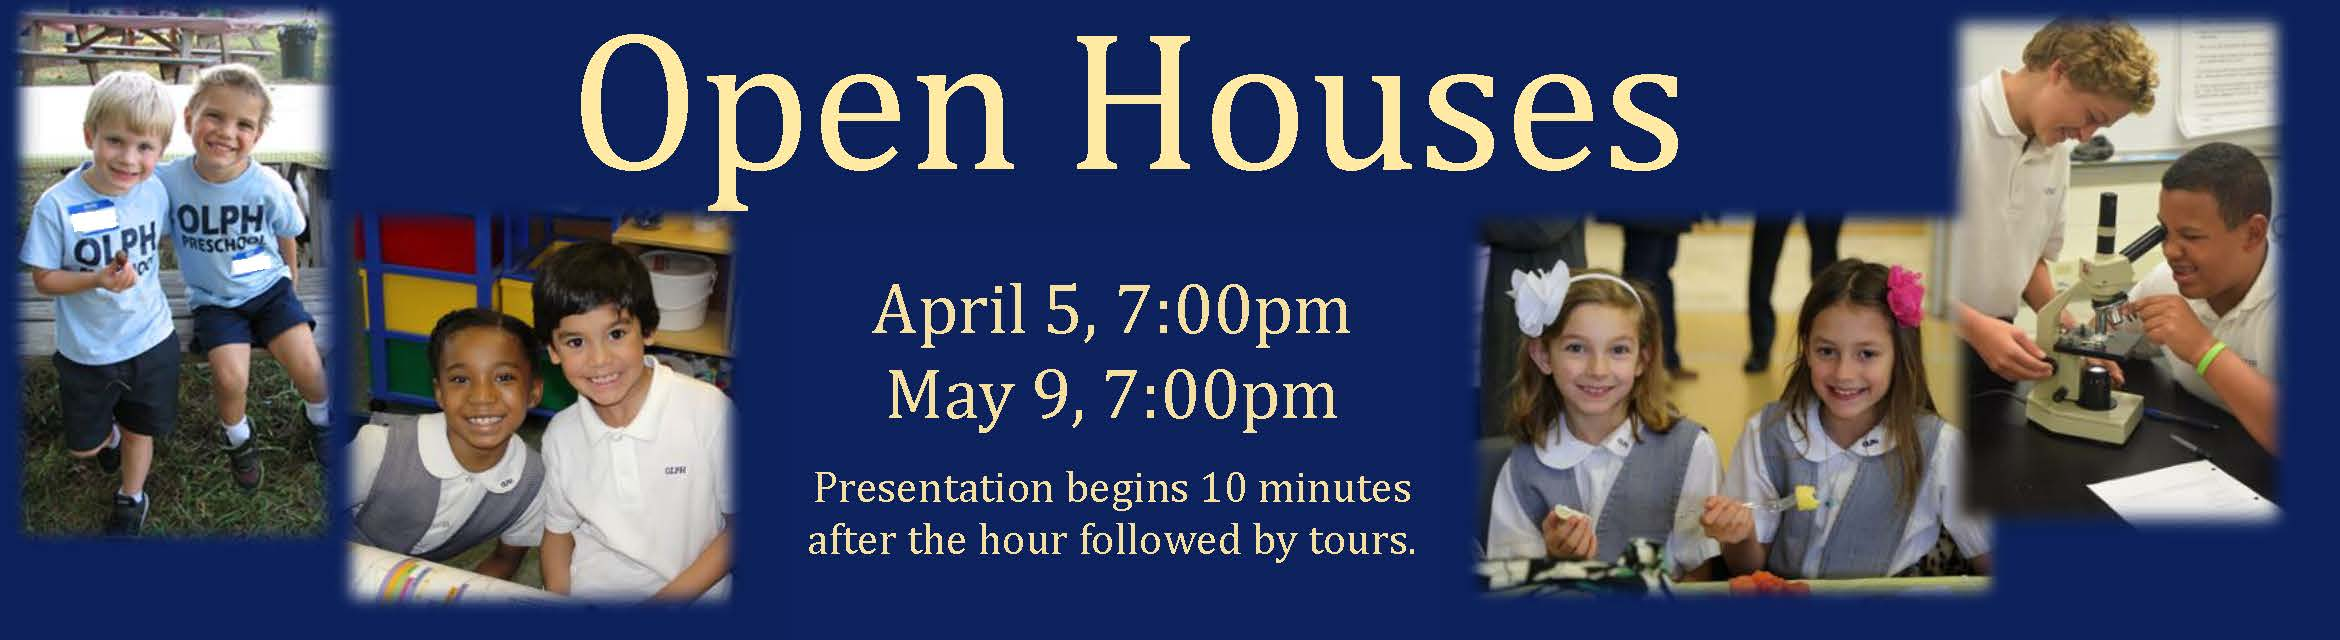 2017-April-May-open-house-slider-11.7-x-3.2